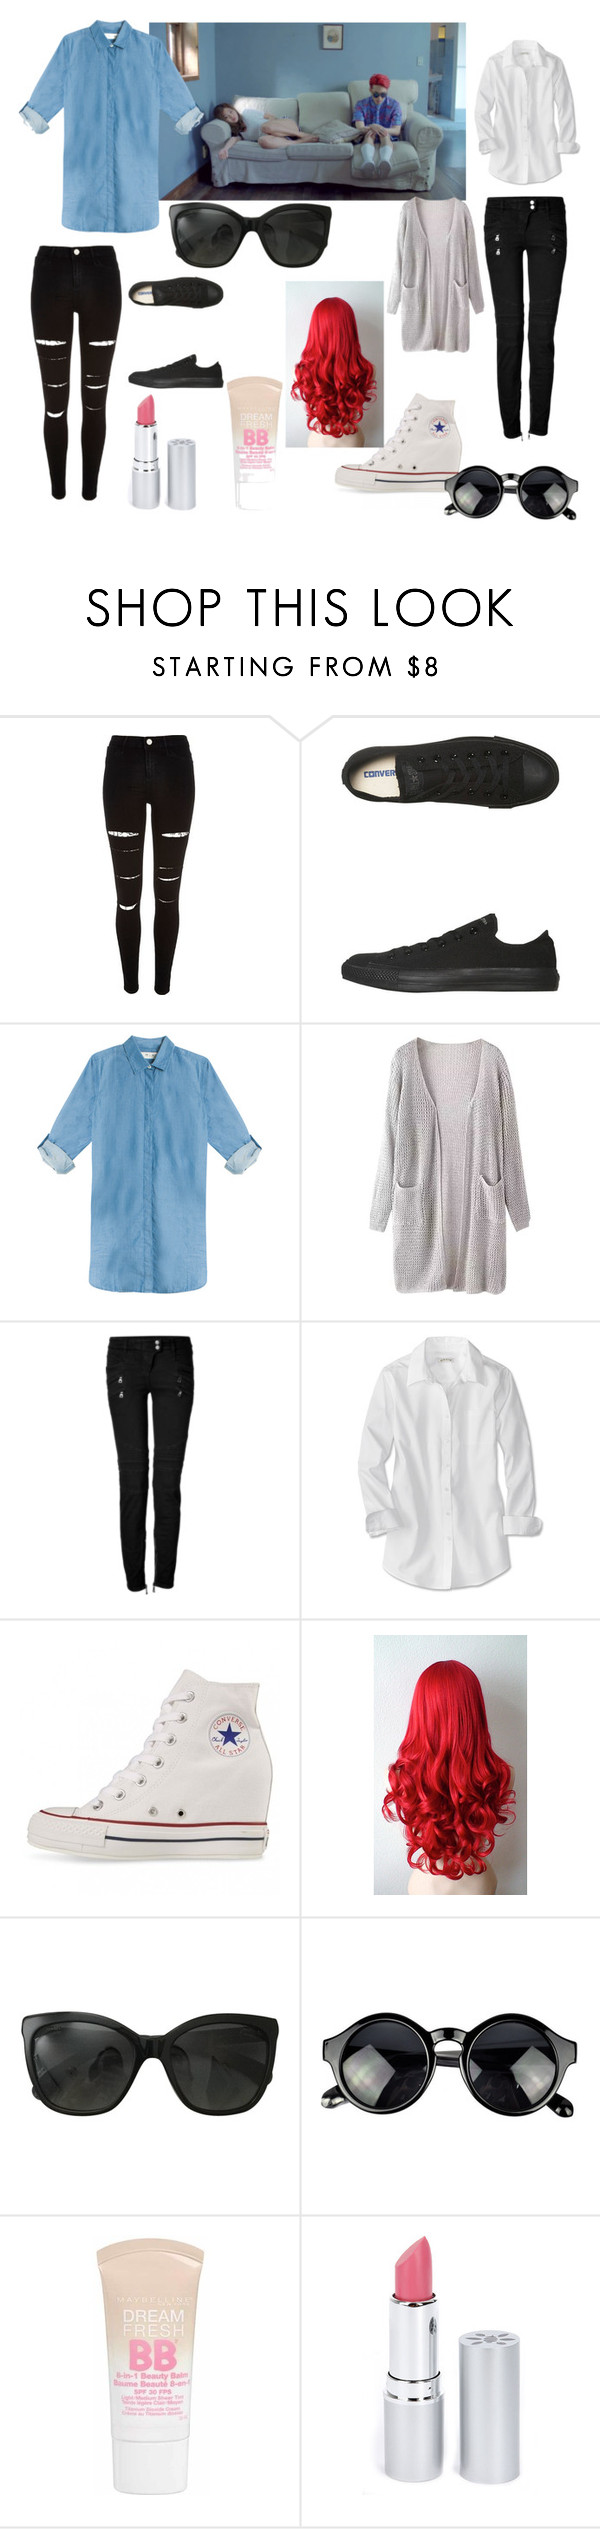 """""""zion.t eat"""" by kpoplover21 ❤ liked on Polyvore featuring River Island, Converse, MiH Jeans, Balmain, Chanel, Maybelline, HoneyBee Gardens, women's clothing, women and female"""